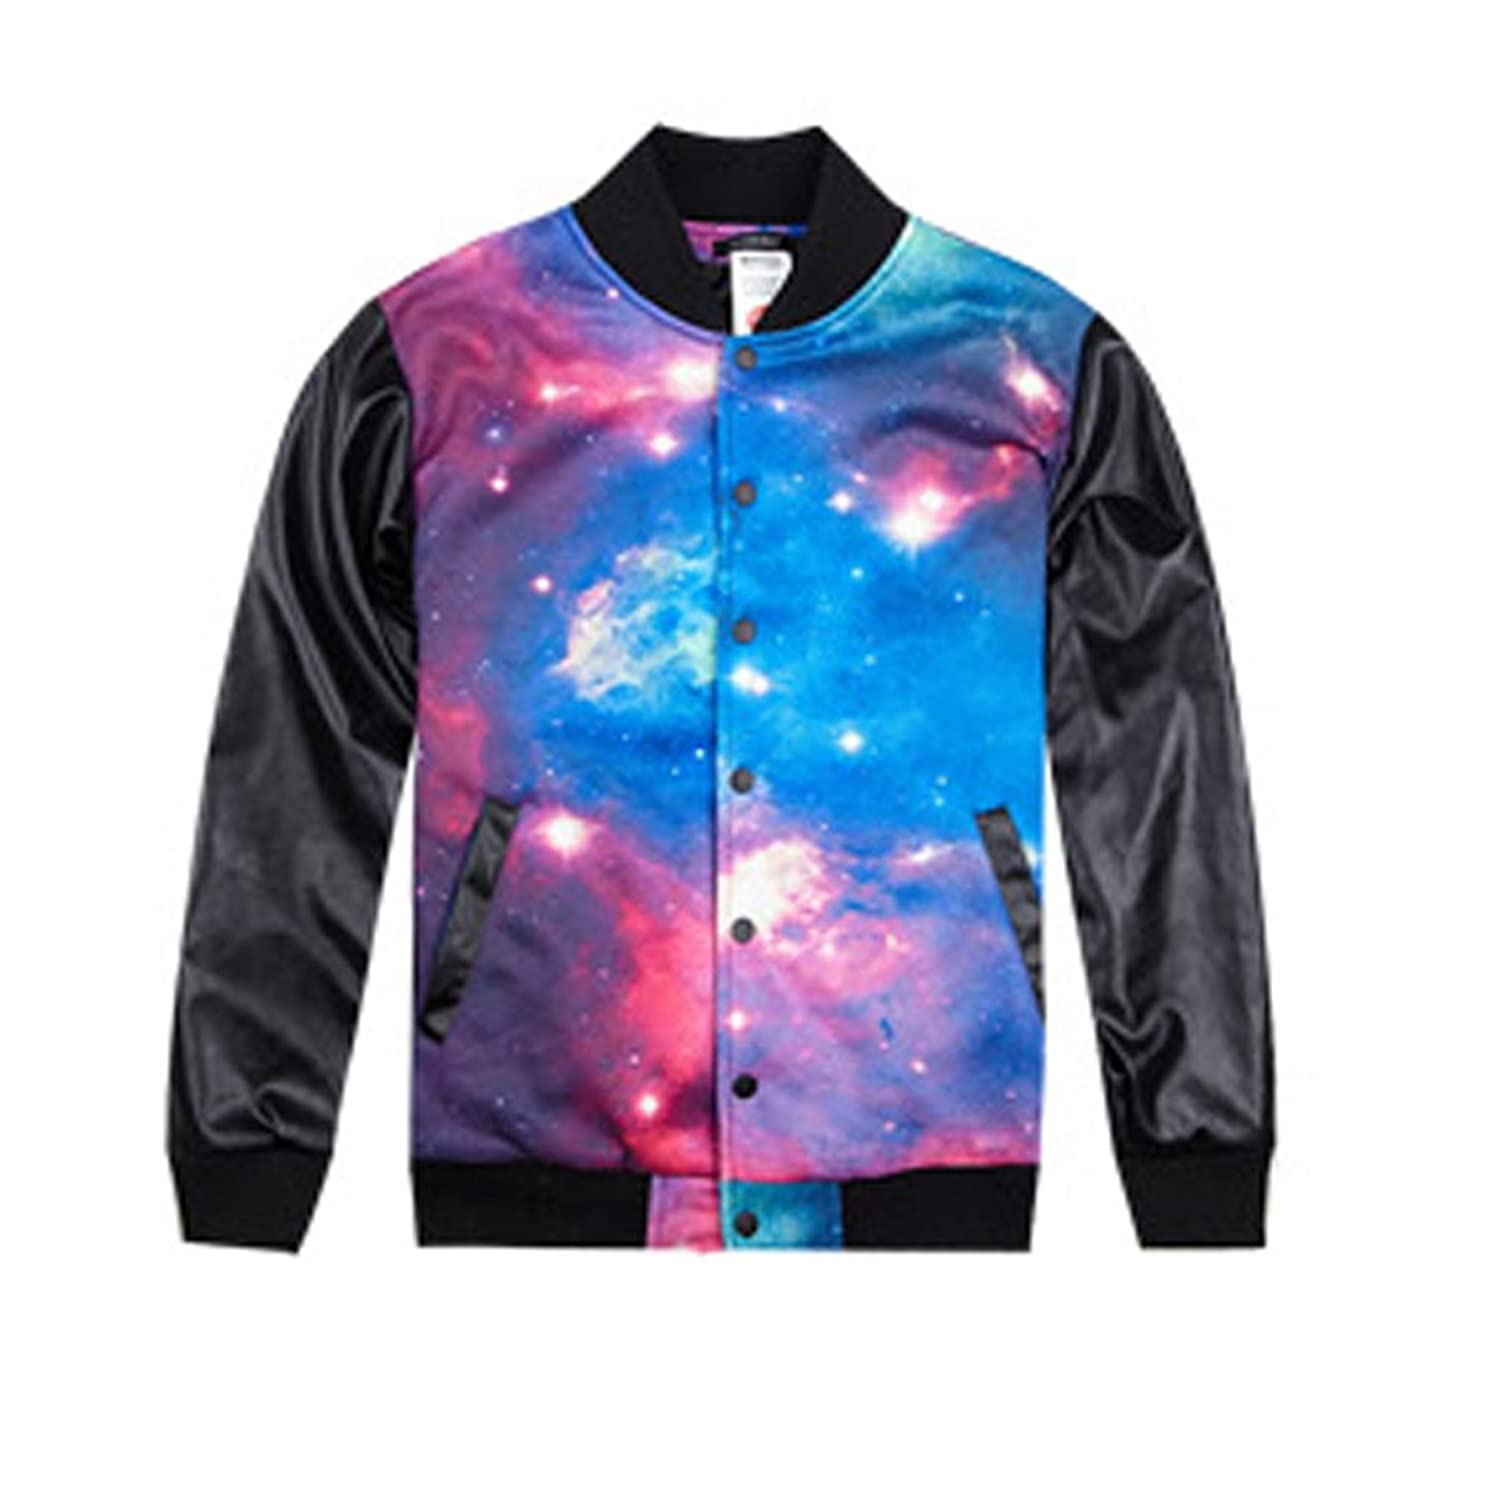 Generic Men's Galaxy Digital Print Leather Sleeves Baseball Jacket ...